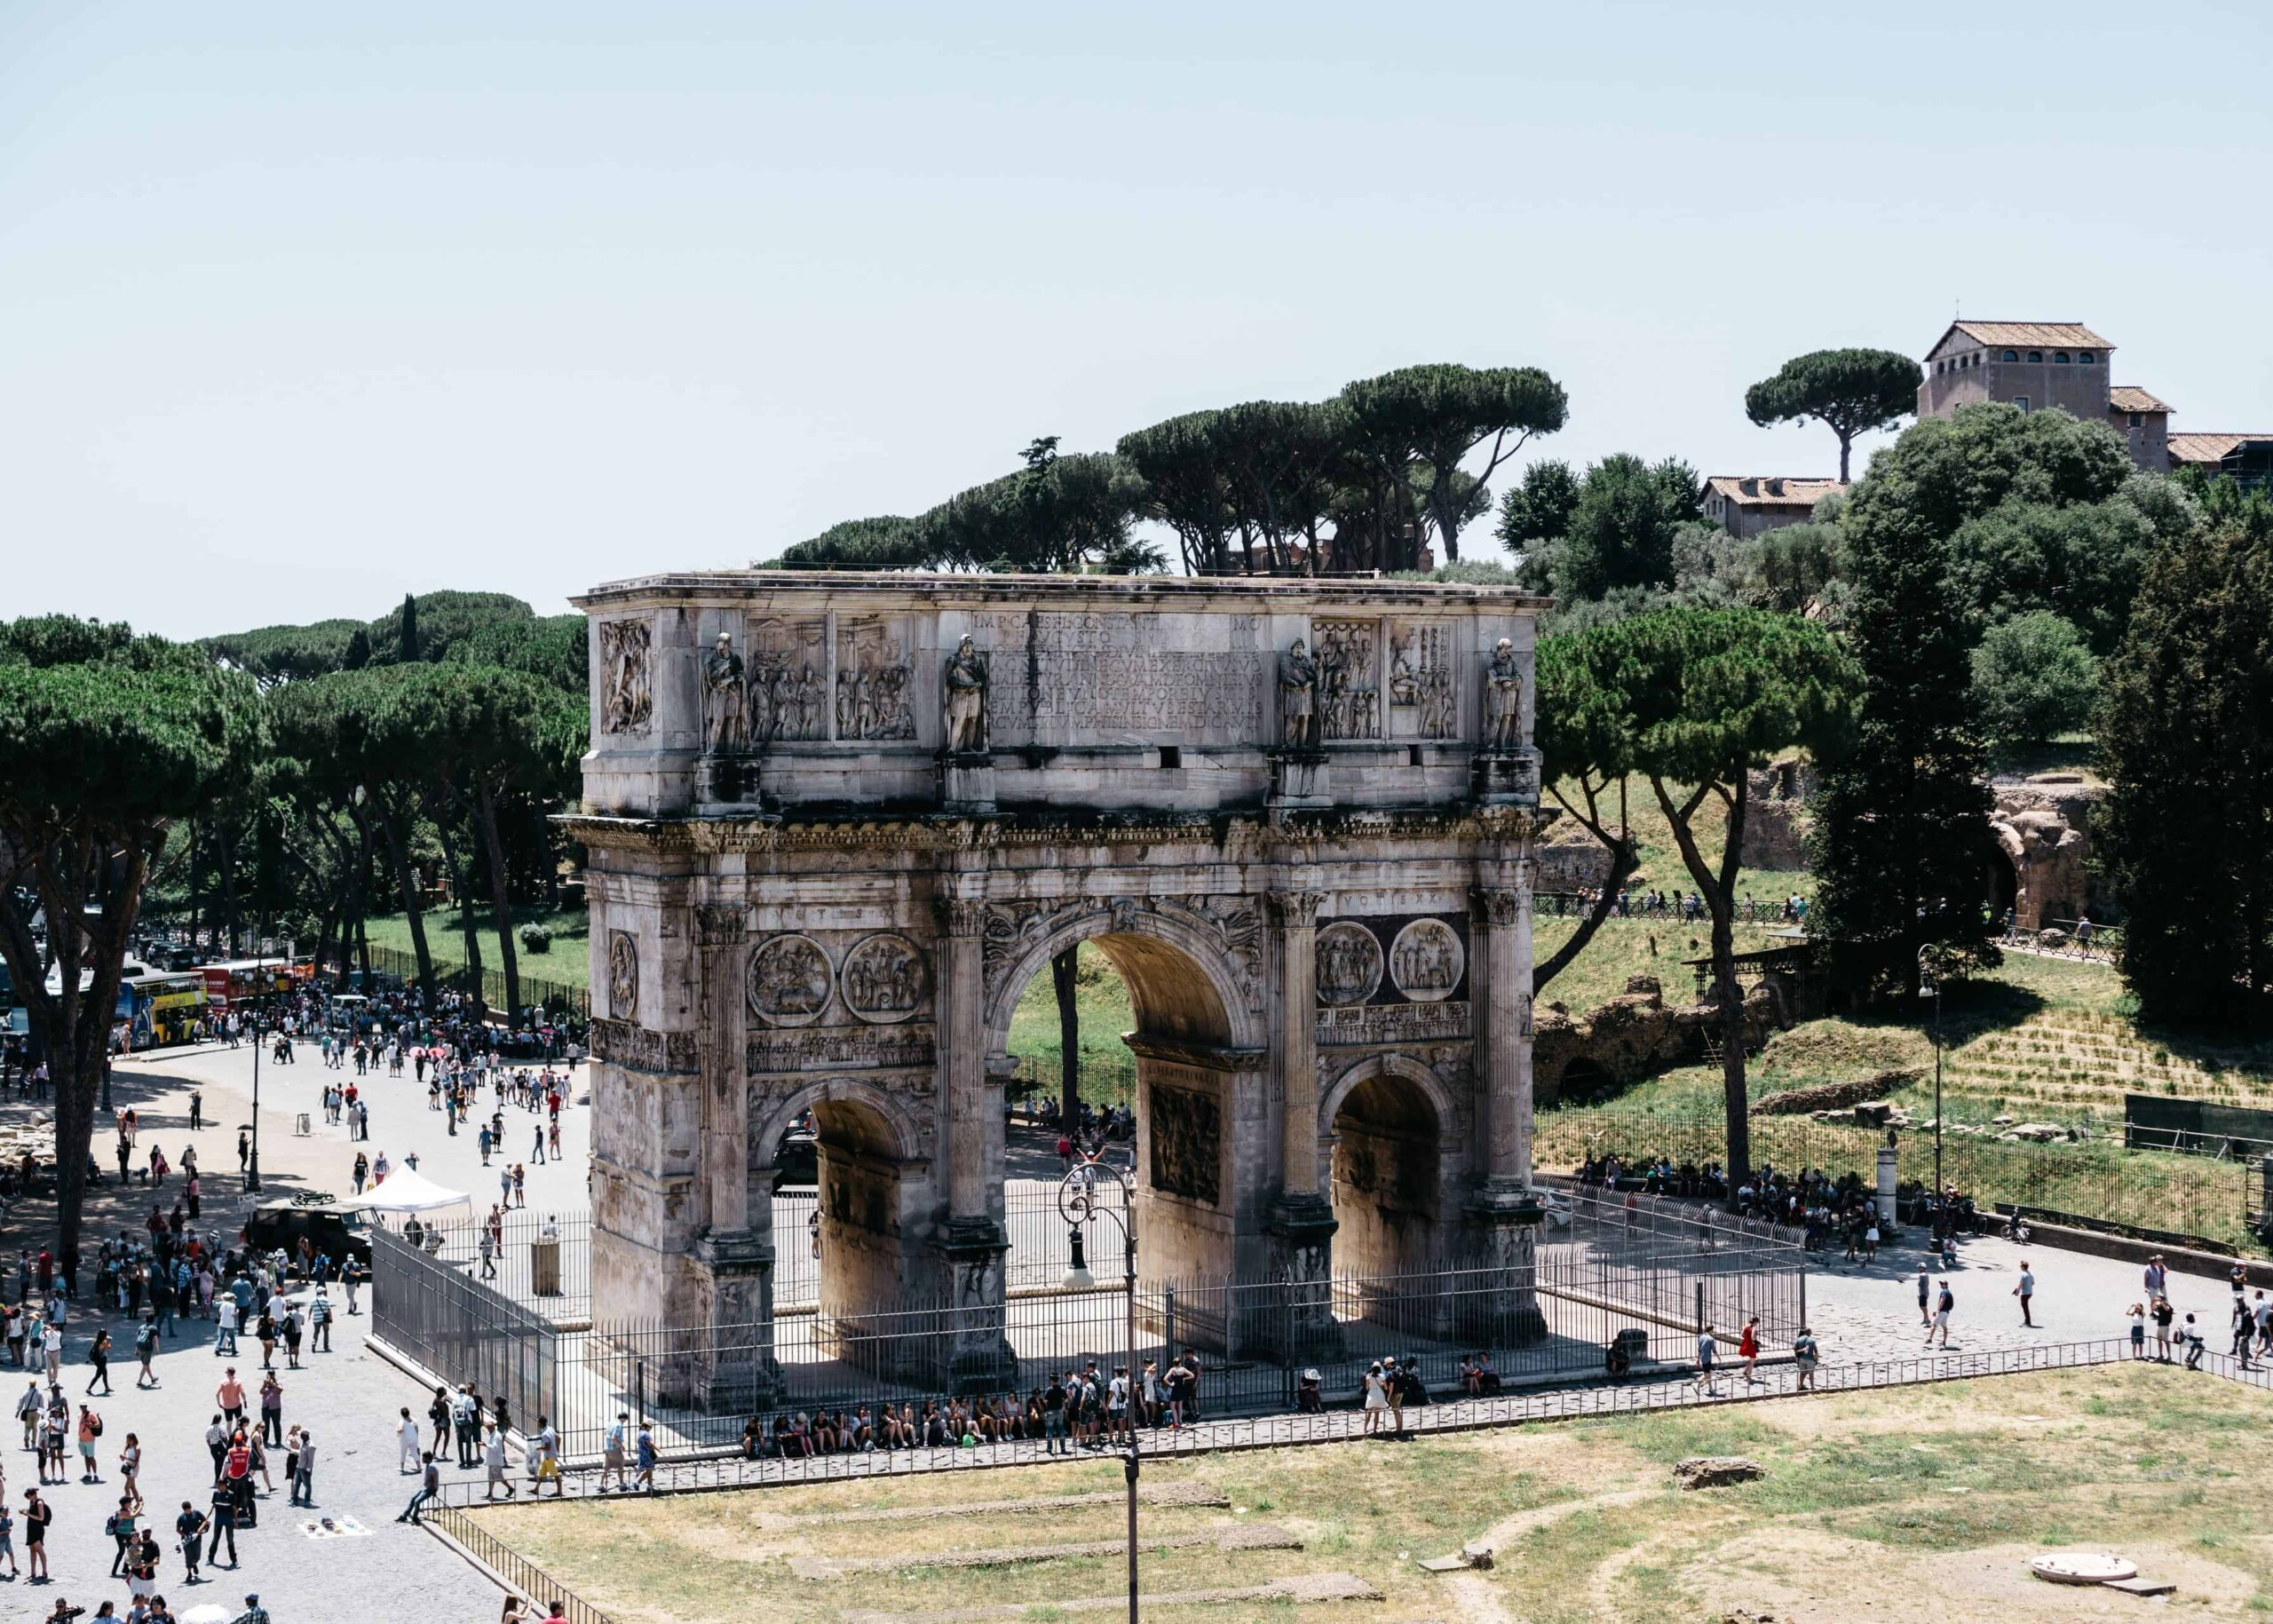 One day in Rome - A self guided walking tour of Rome.